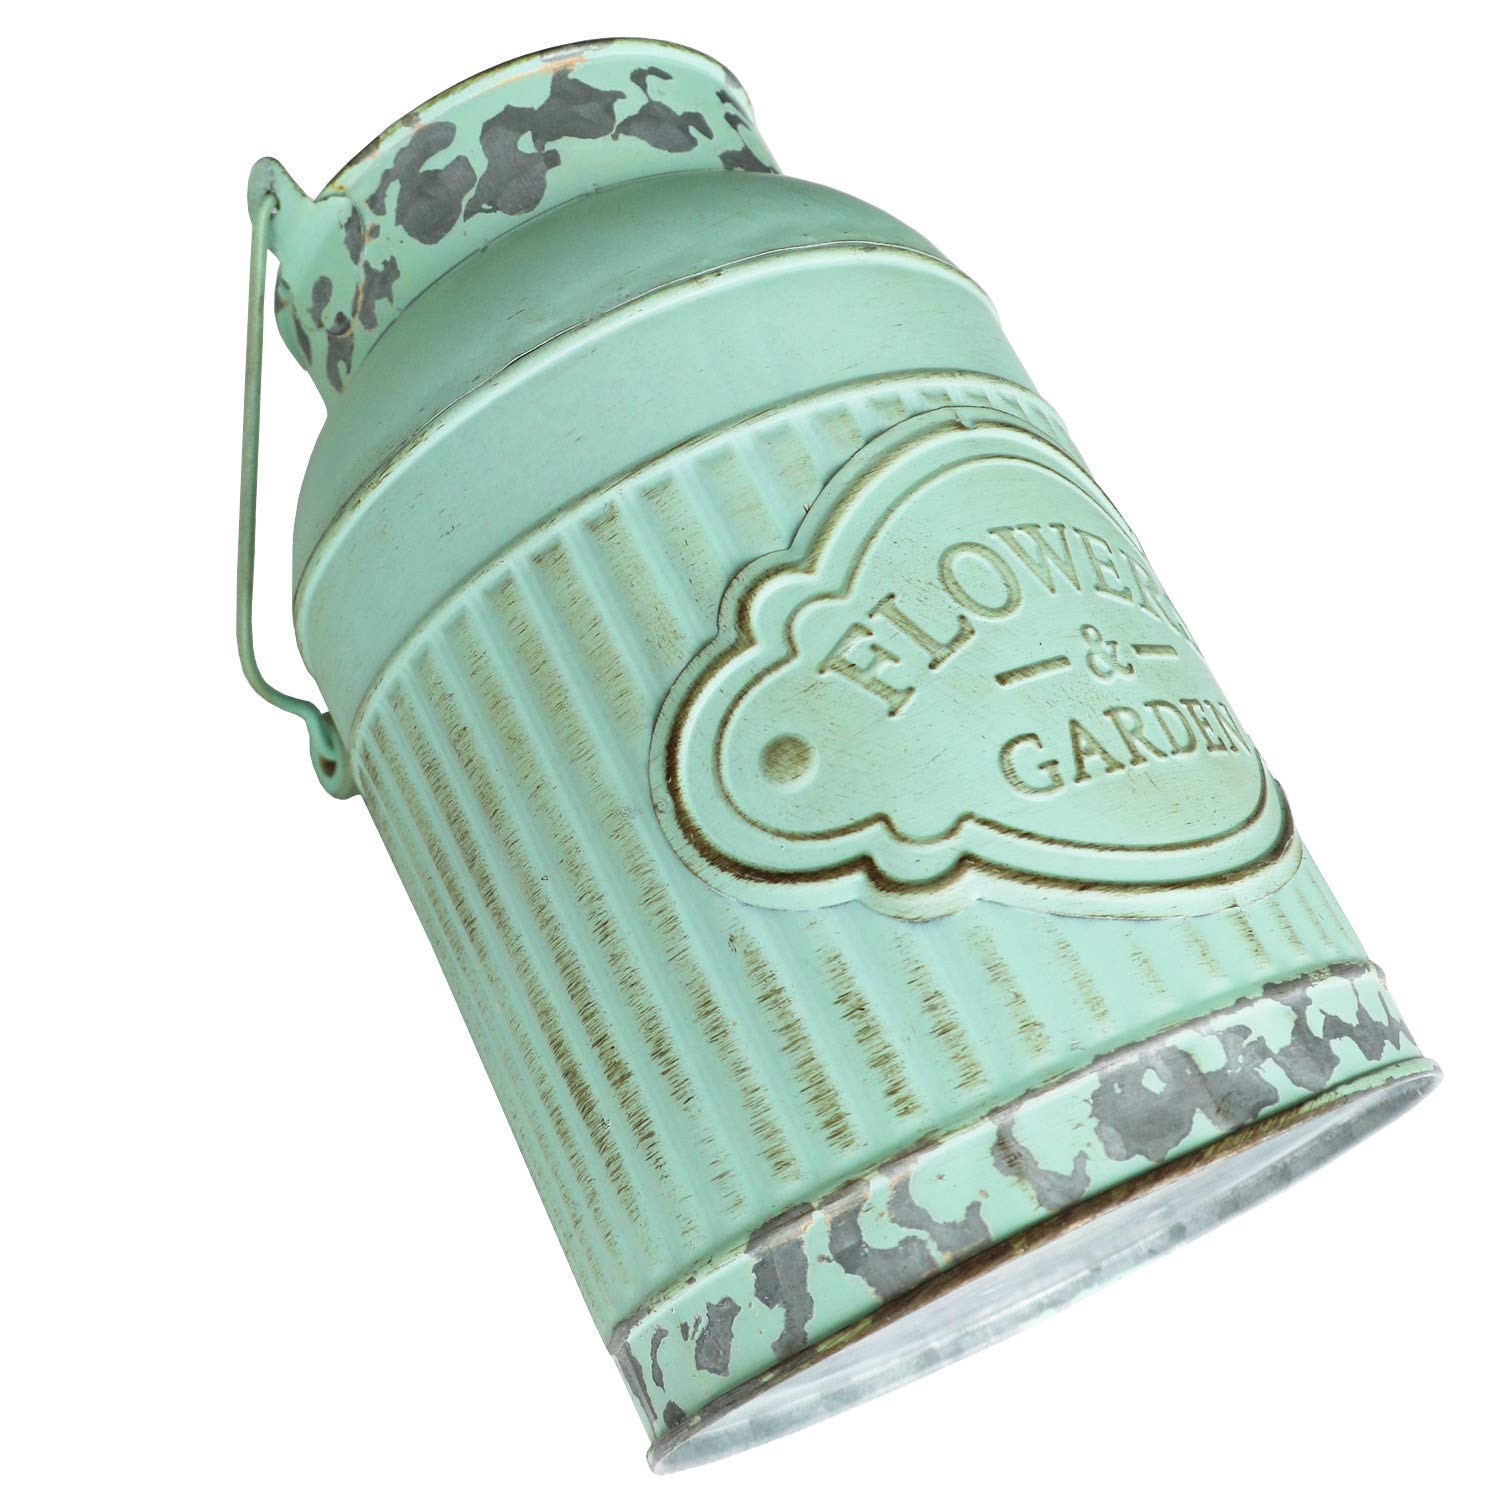 HyFanStr Shabby Chic Green Painted Milk Can Style Metal Vase Flower Pitcher Jug Pot by HyFanStr (Image #3)